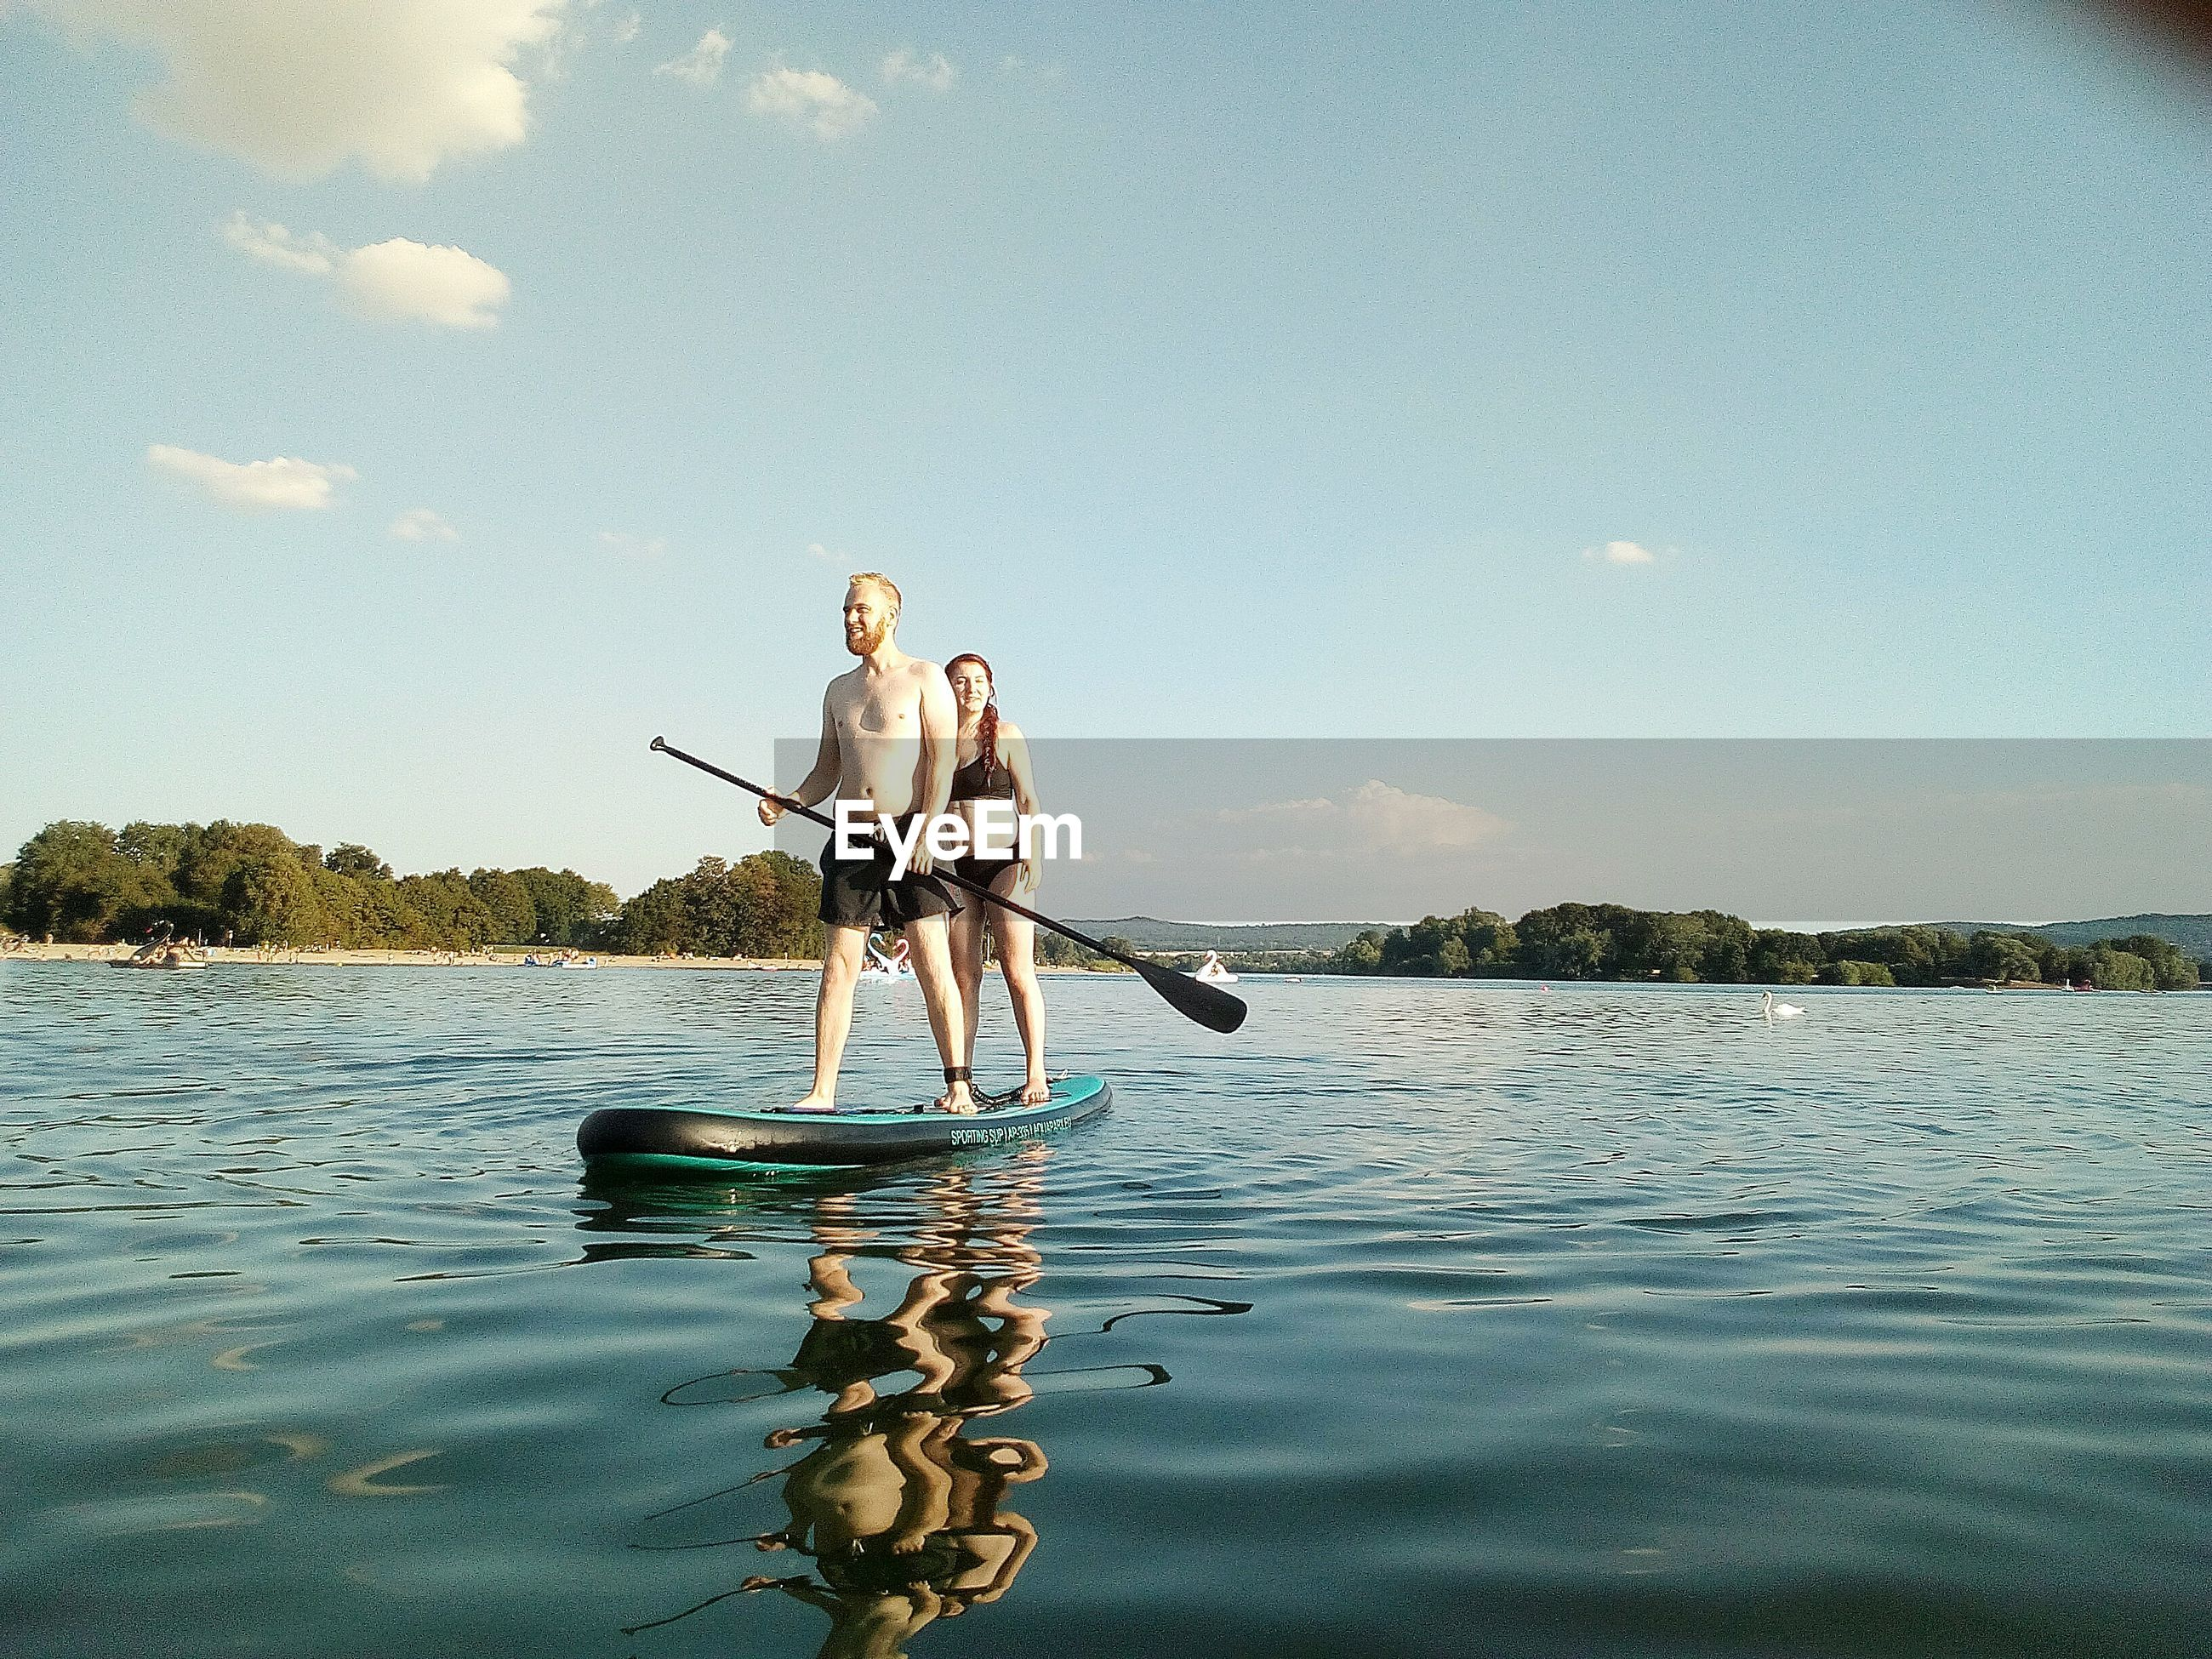 Friends standing on paddleboard in lake against sky